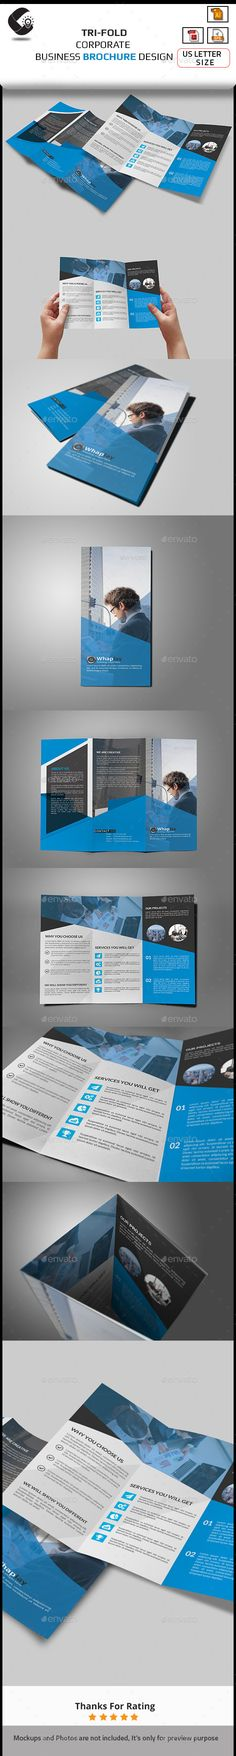 Fitness Gym Bifold   Halffold Brochure Fitness, Gym and Brochures - fitness brochure